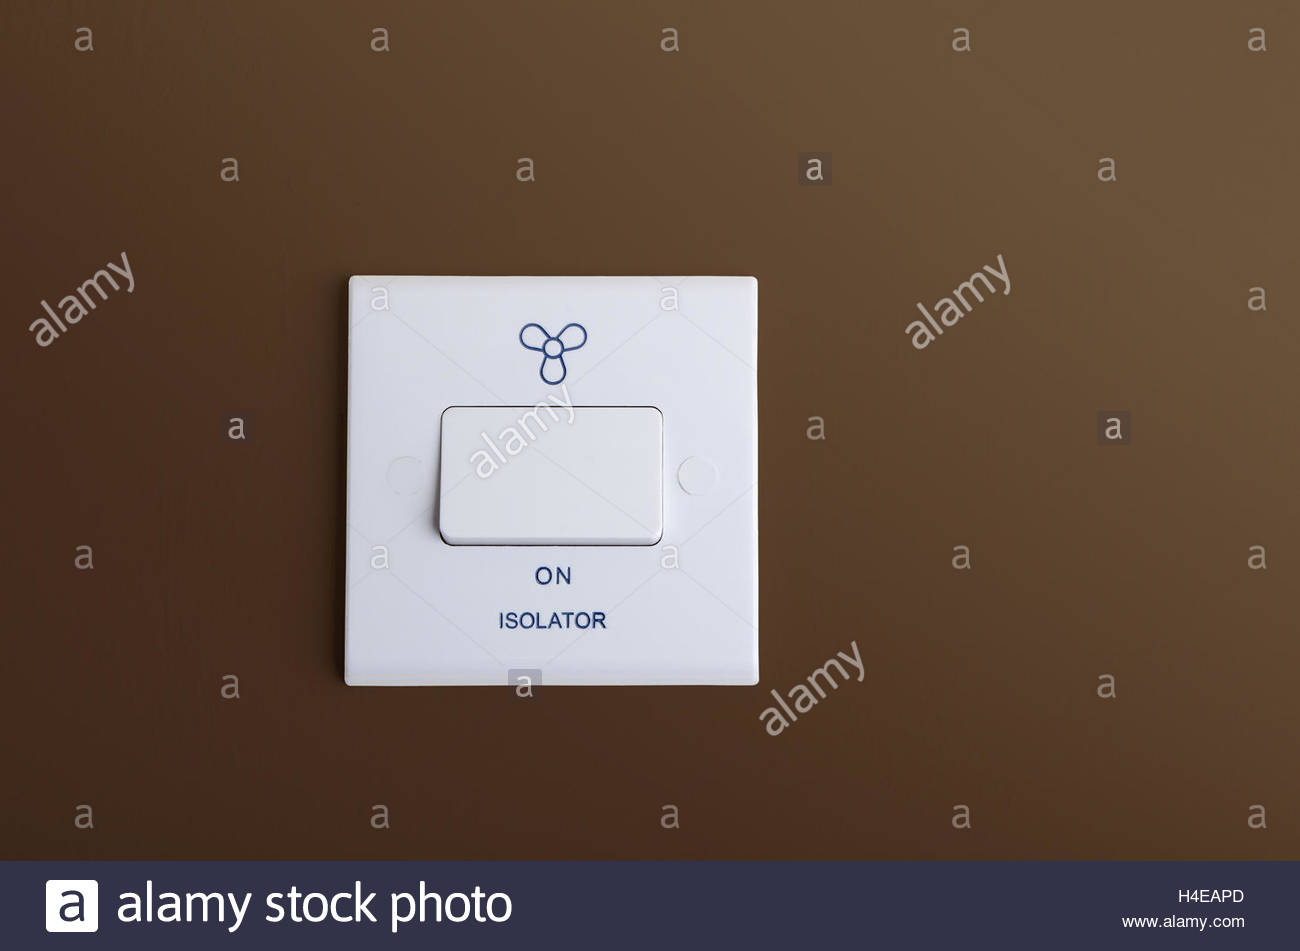 Isolator Stock Photos Images Alamy 4 Way Switch Extractor Fan Mounted On Interior Wall Copy Space Image